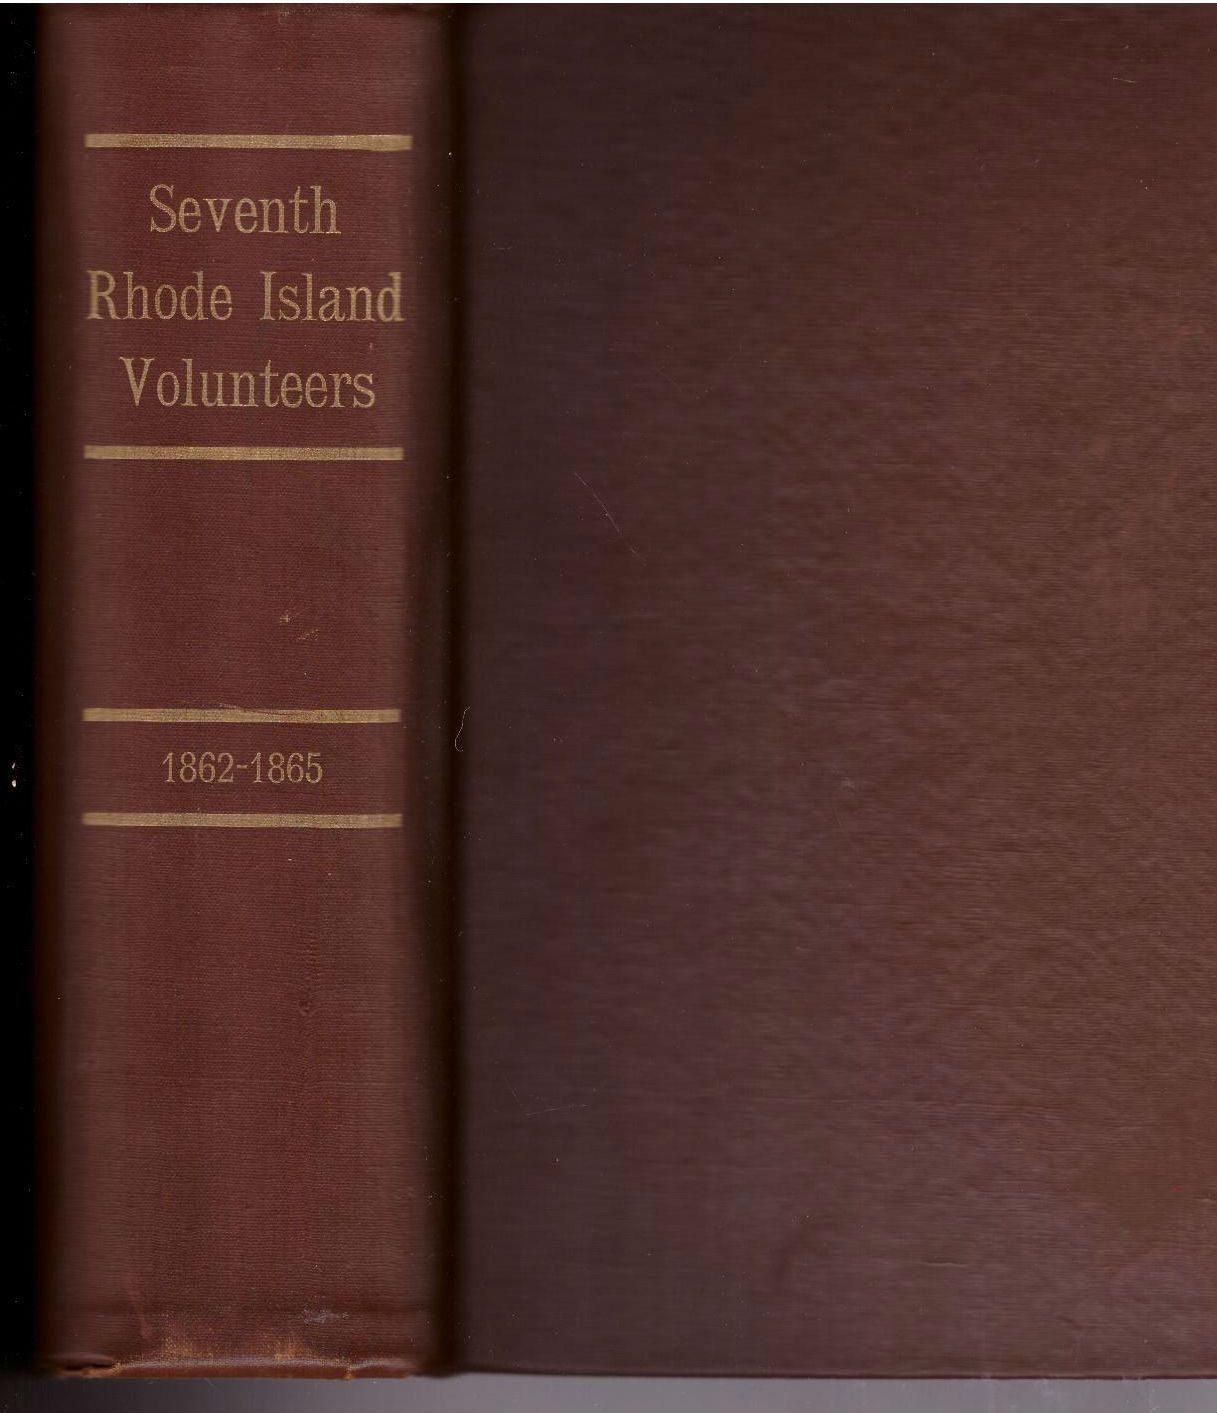 THE SEVENTH RHODE ISLAND VOLUNTEERS IN THE CIVIL WAR, 1862-1865., Hopkins, William P.